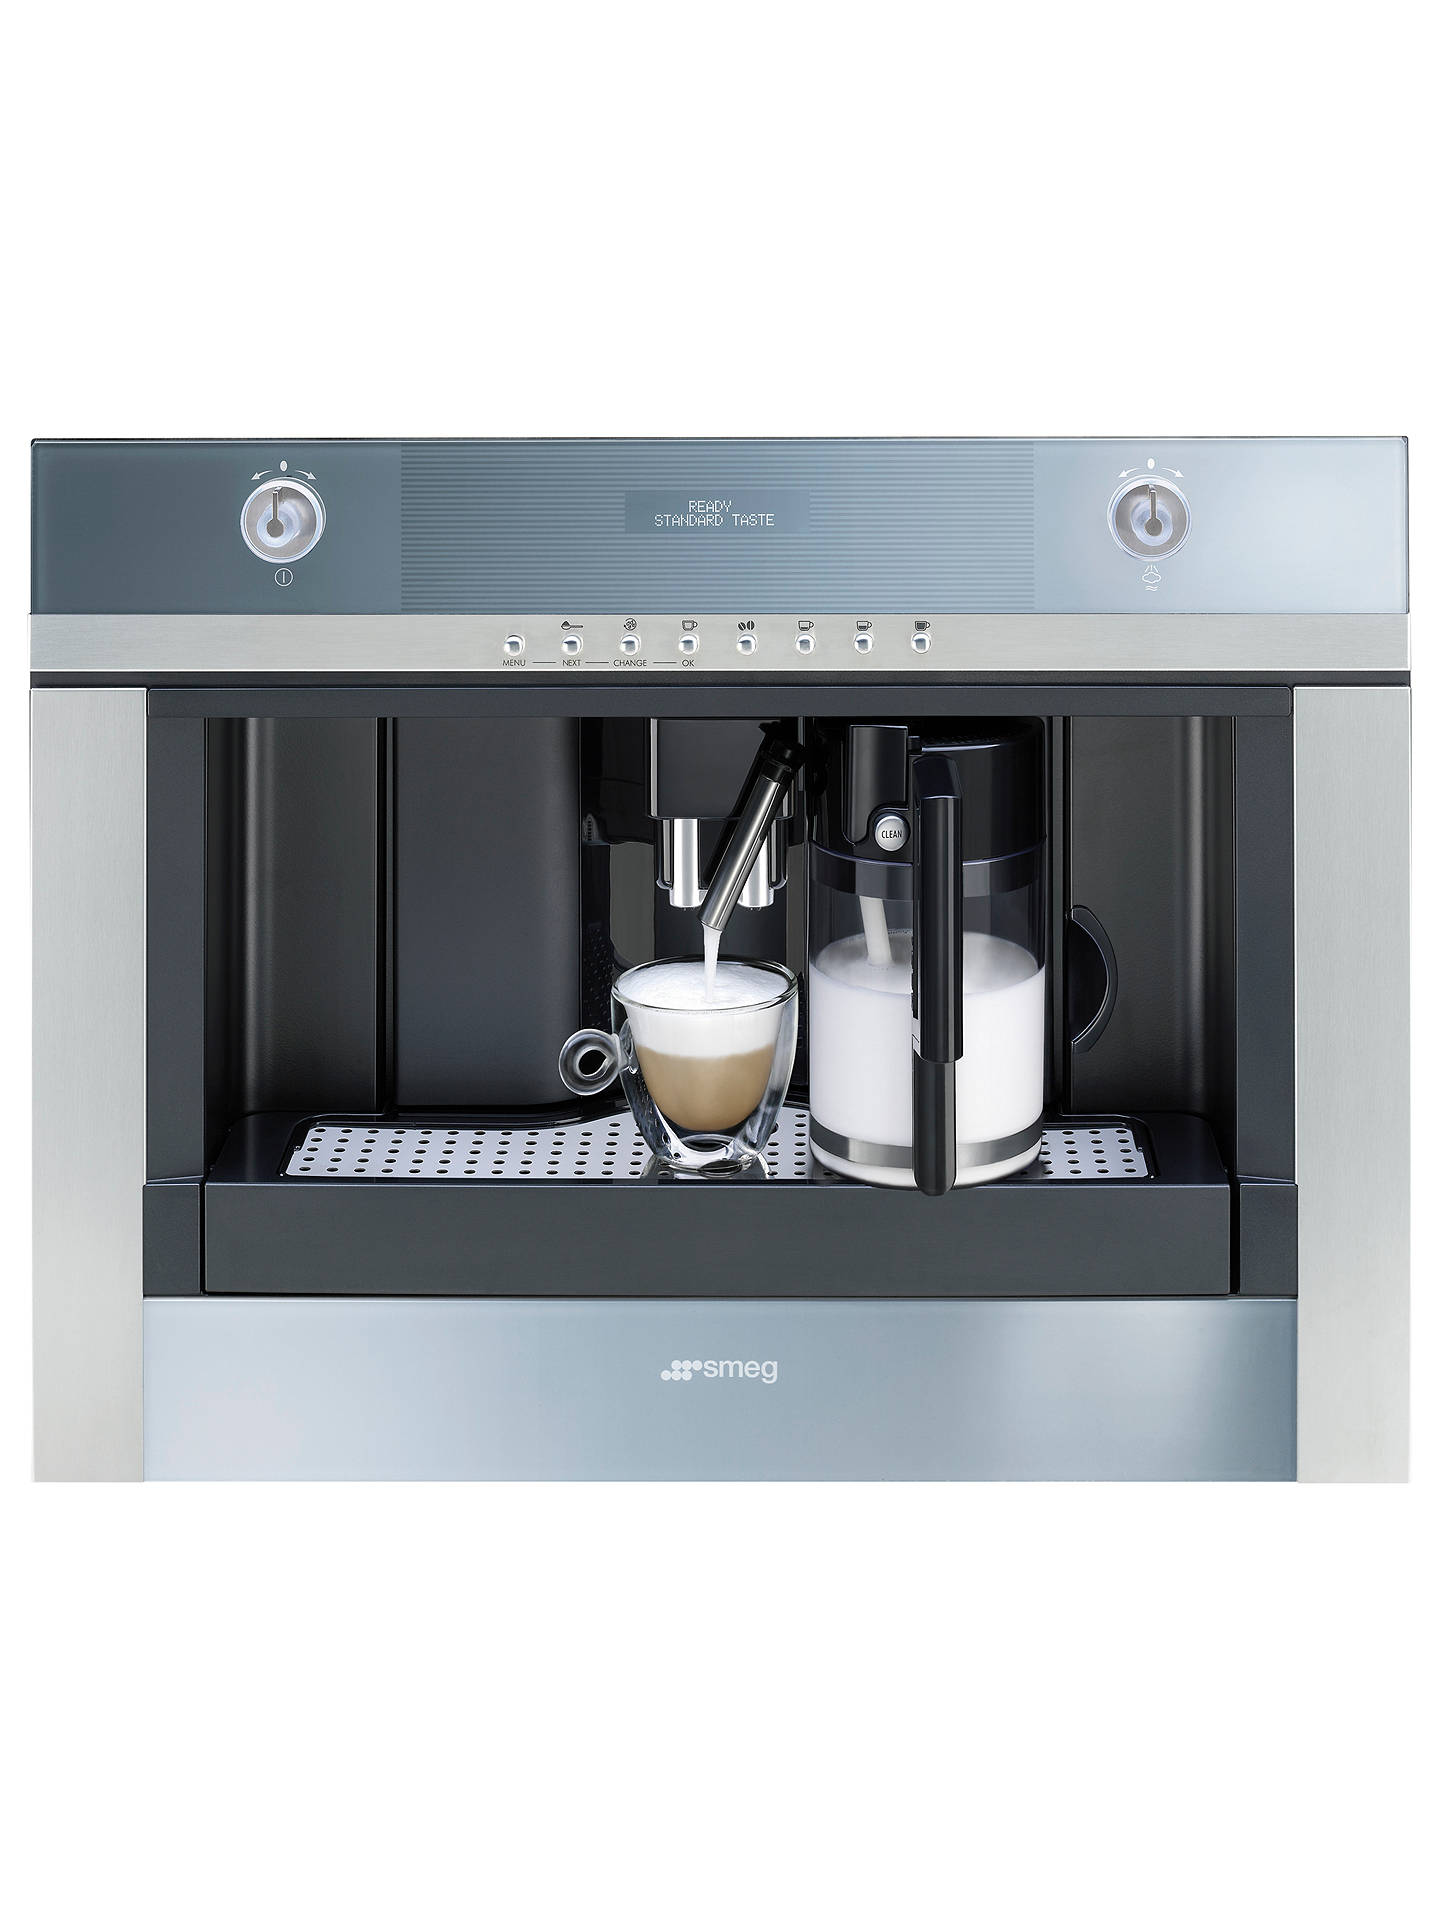 Buy Smeg CMSC451 Bean-to-Cup Integrated Coffee Machine, Stainless Steel Online at johnlewis.com